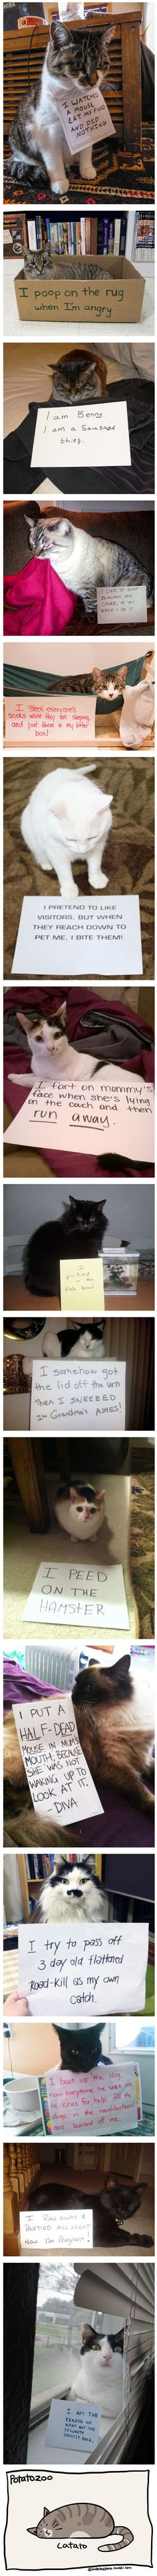 Guilty Cats That Are NOT Sorry - 9GAG This isn't dog Shaming but CAT SHAMING lol had to save it